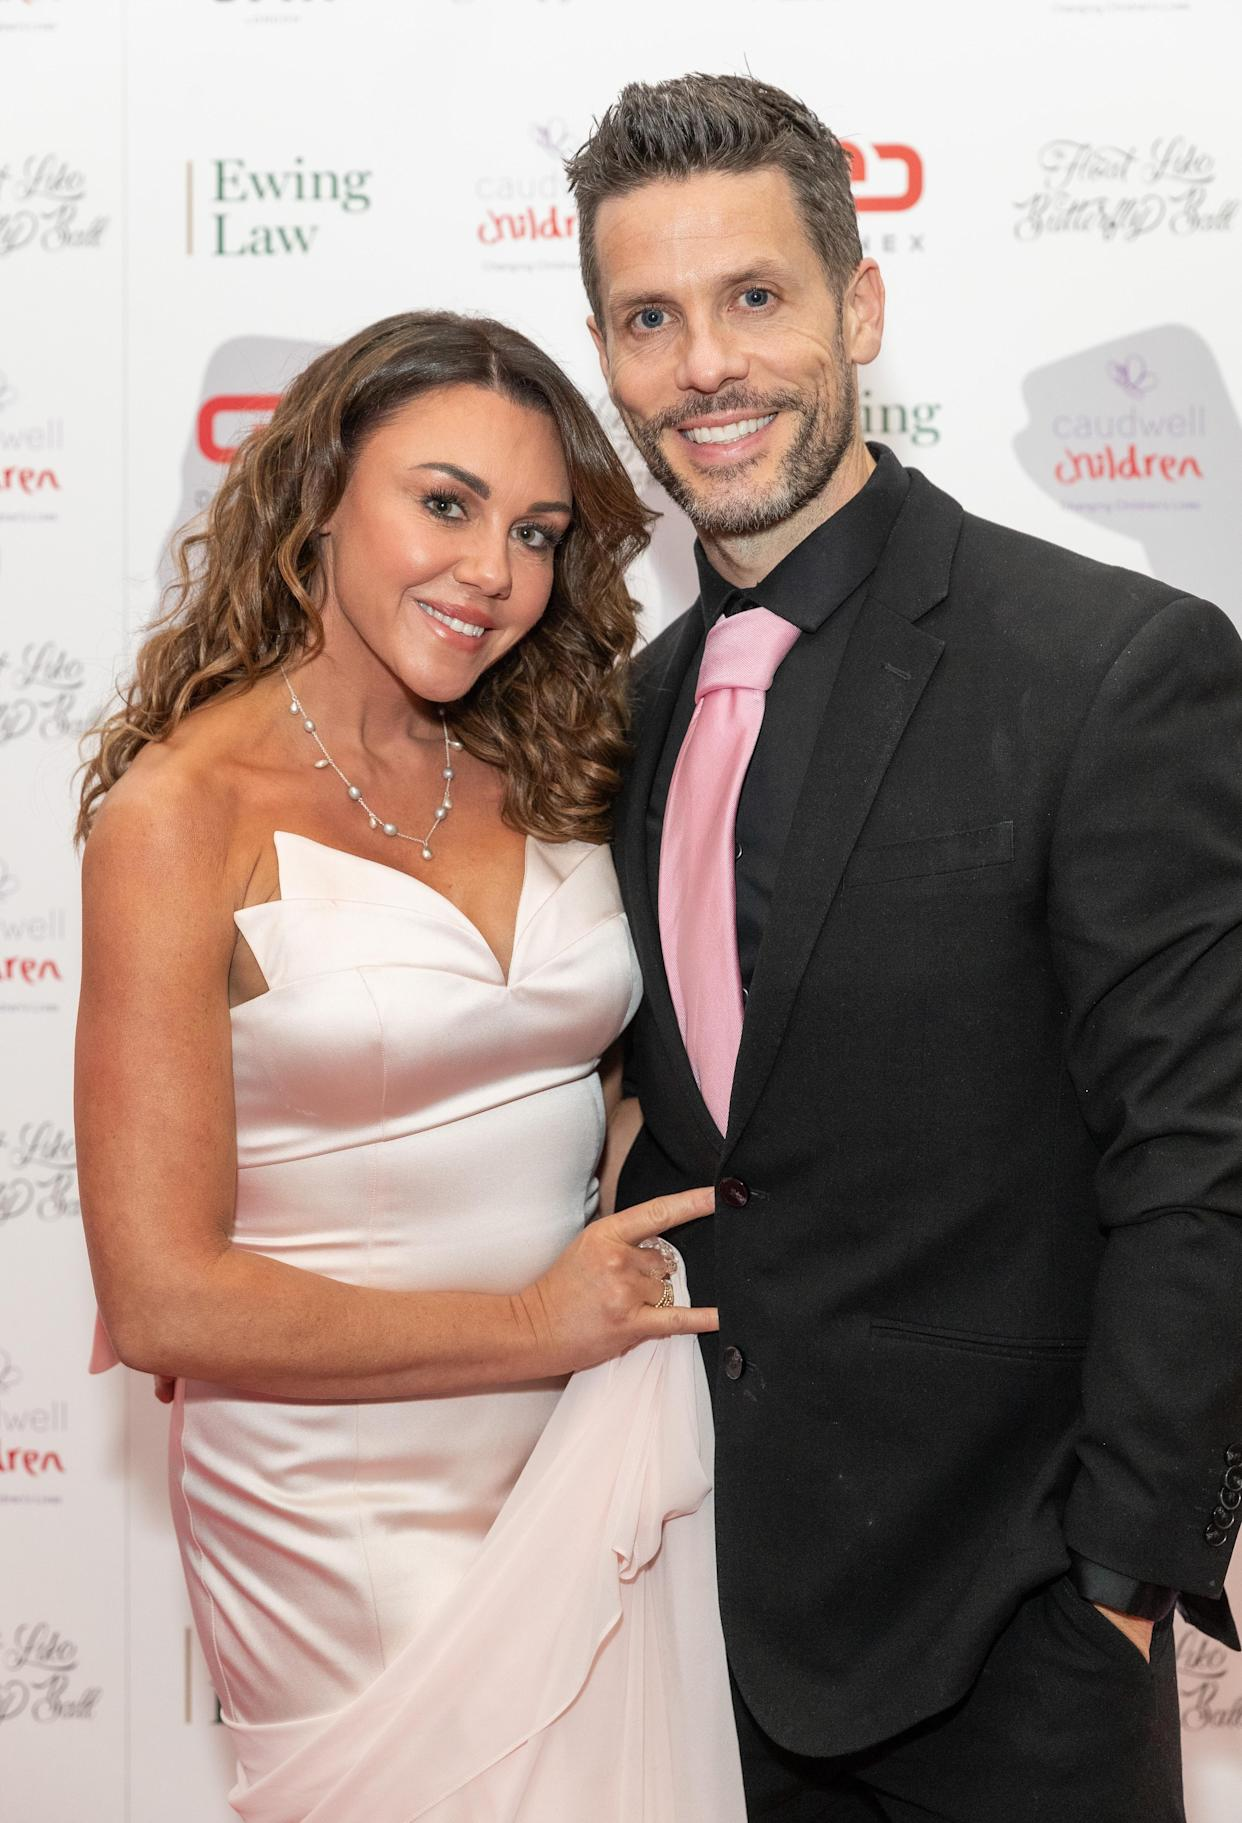 LONDON, ENGLAND - NOVEMBER 16: Michelle Heaton and Hugh Hanley attend the Float Like A Butterfly Ball in aid of Caudwell Children at The Grosvenor House Hotel on November 16, 2019 in London, England. (Photo by David M. Benett/Dave Benett/Getty Images)